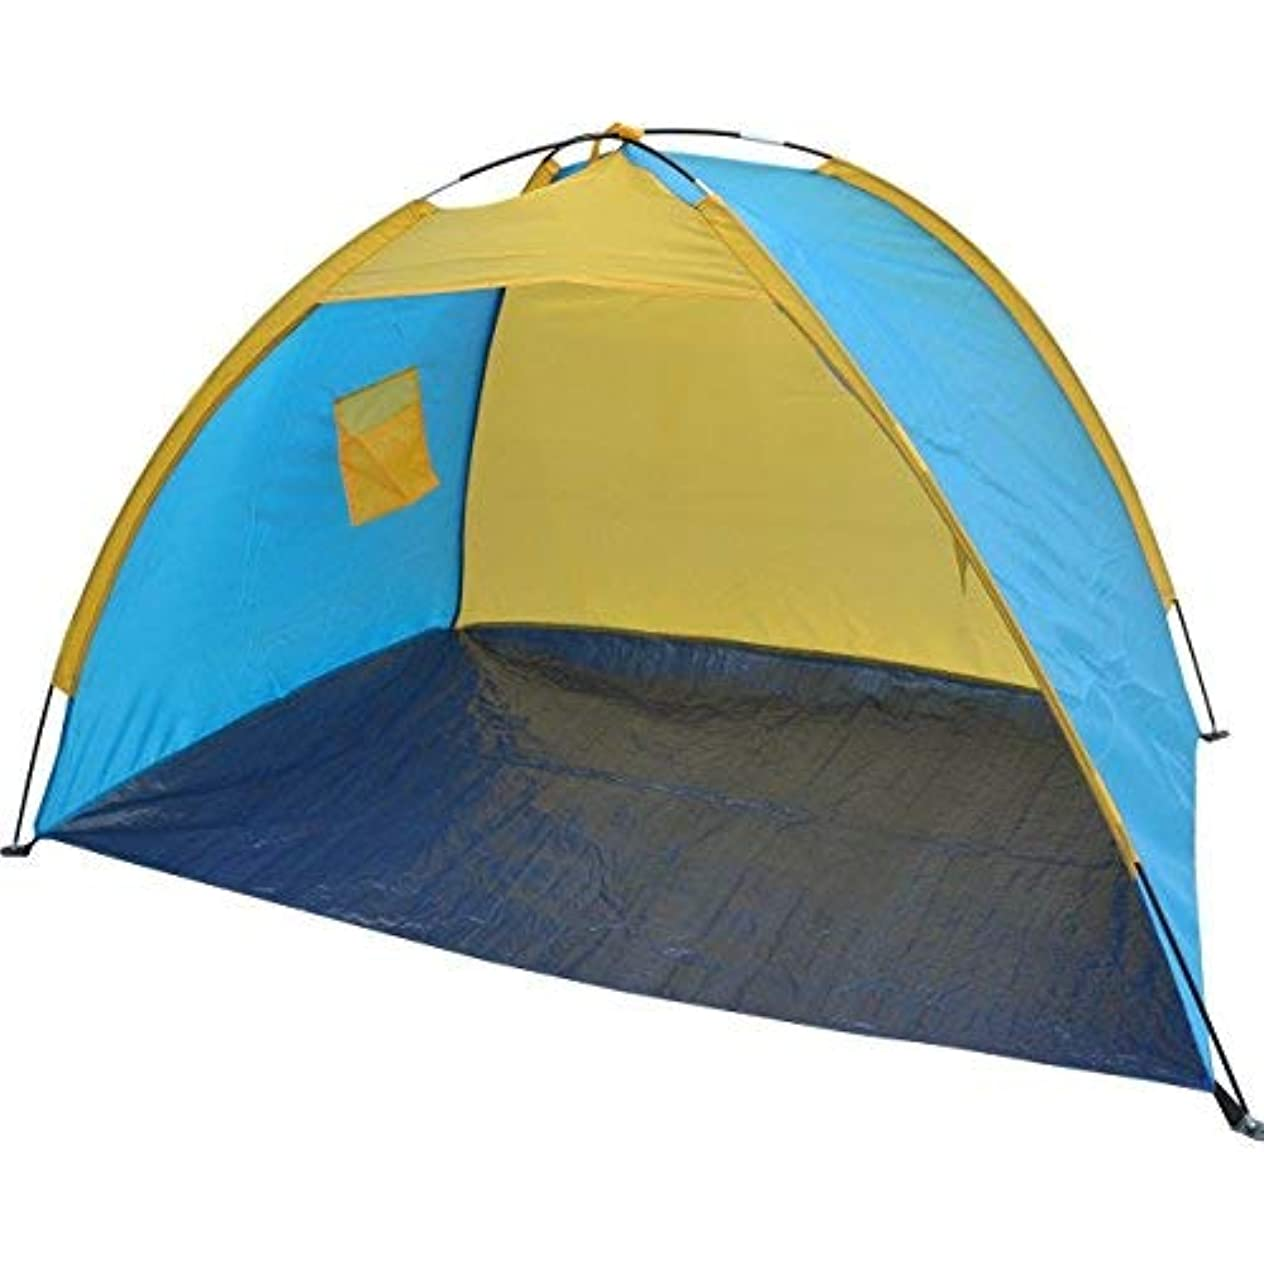 息を切らして集めるルートBenefitUSA K2-8229 Beach, Tent(テント), shelter, Camping, Light Blue with Yellow [並行輸入品]